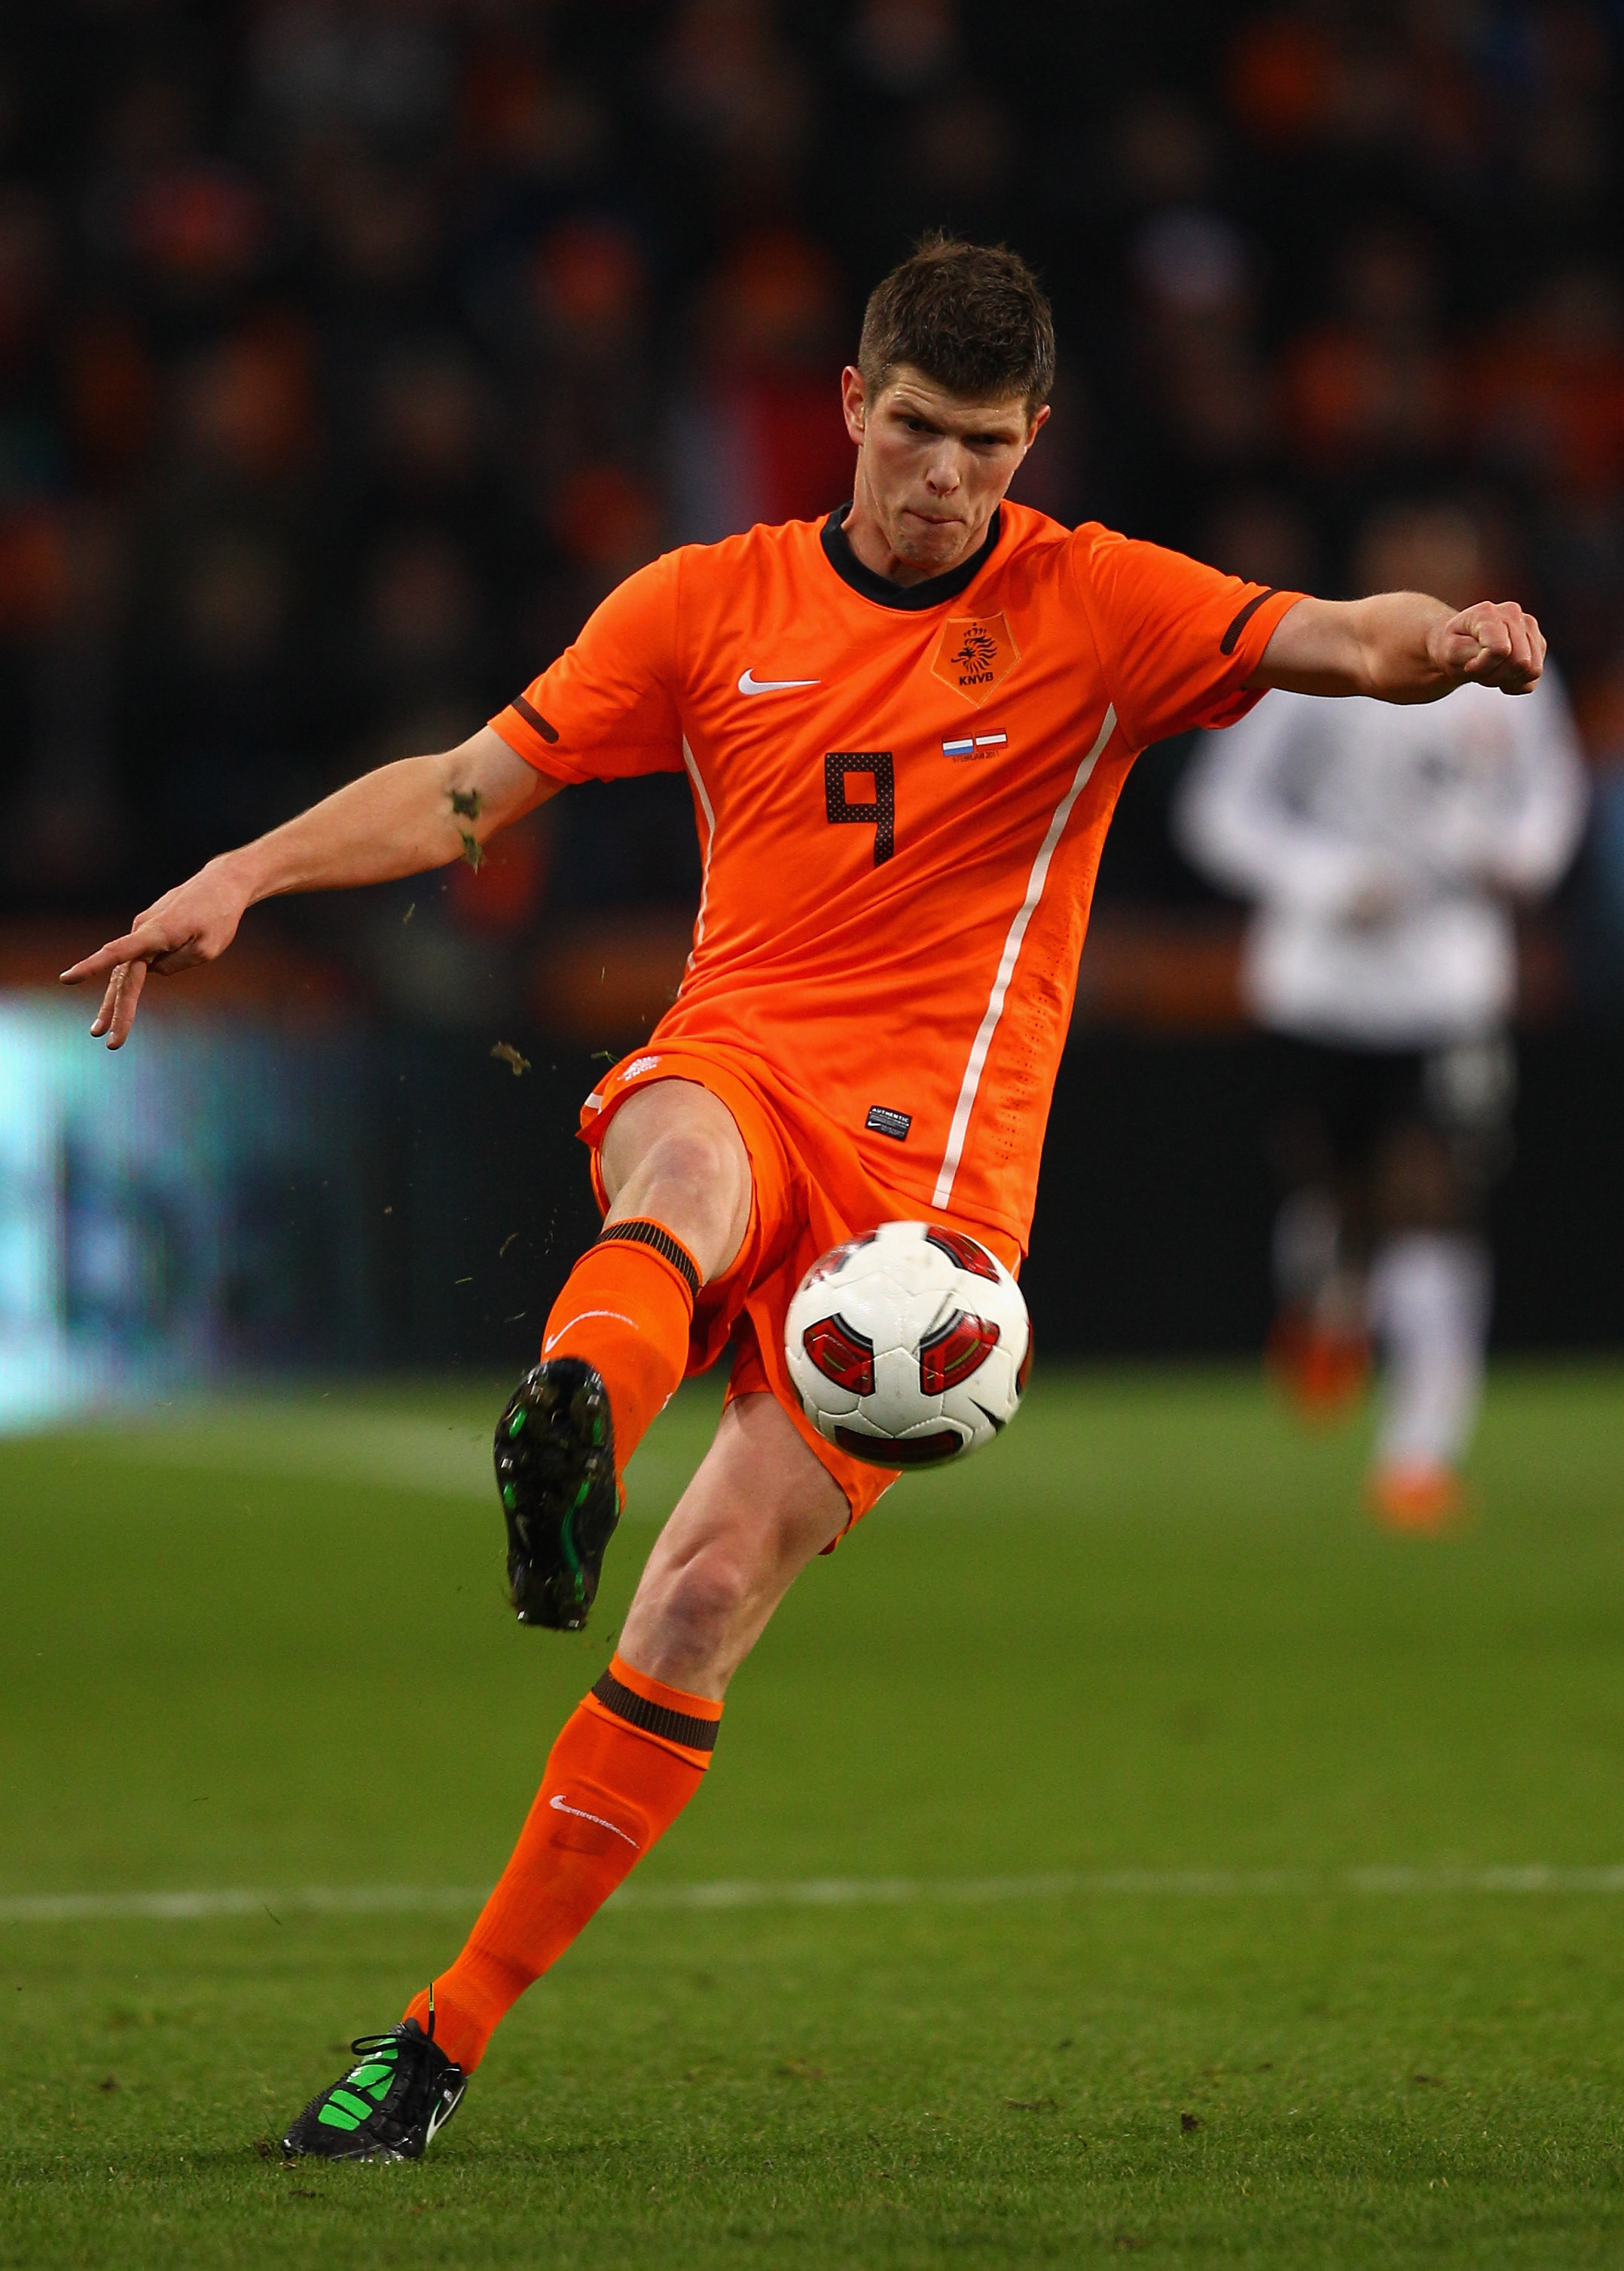 EINDHOVEN, NETHERLANDS - FEBRUARY 09:  Klaas Jan Huntelaar of The Netherlands during the International Friendly match between The Netherlands and Austria at the Phillips Stadion on February 9, 2011 in Eindhoven, Netherlands.  (Photo by Richard Heathcote/G